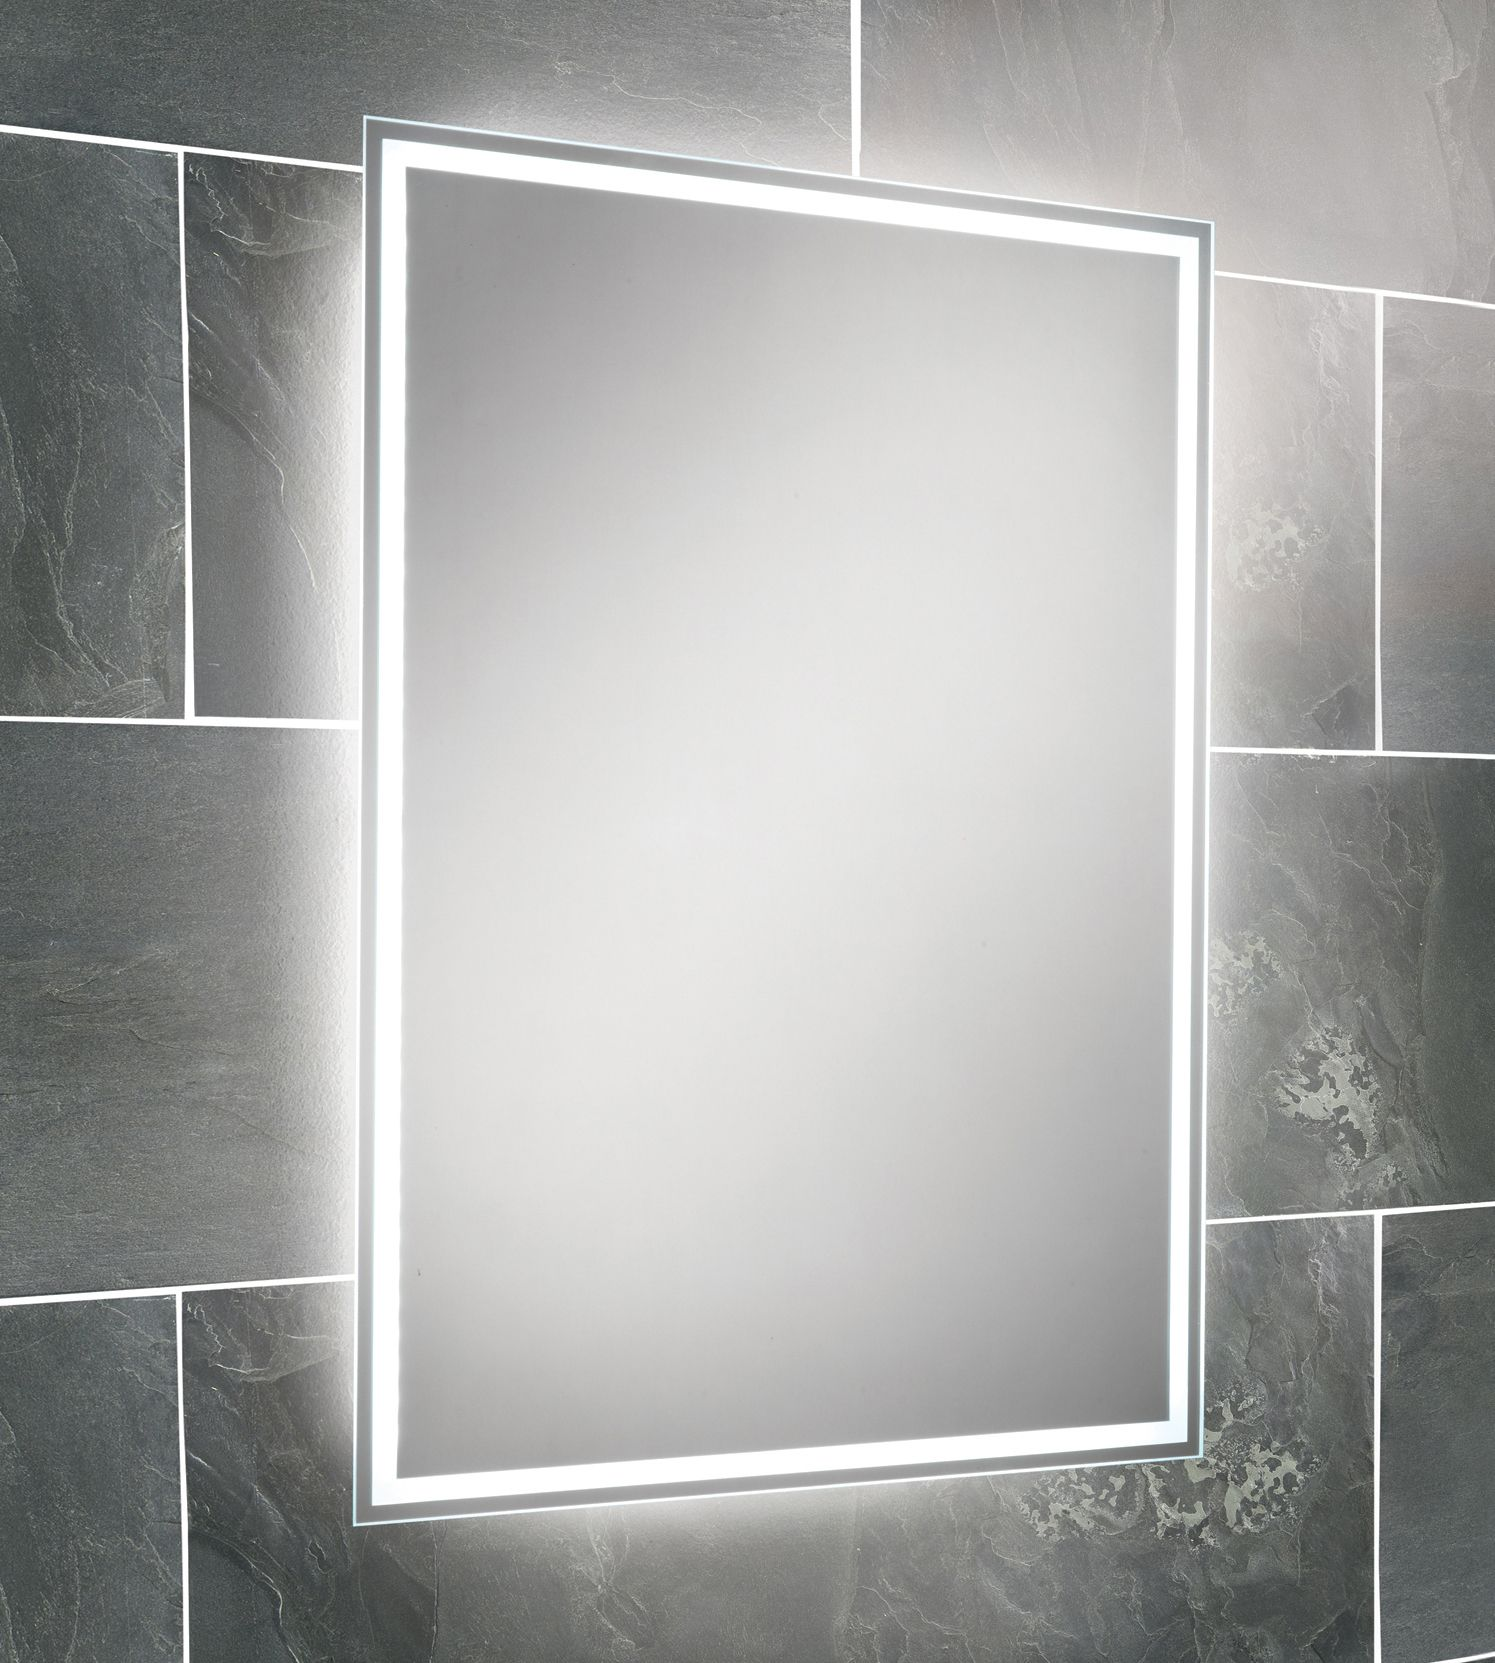 Mounted Bathroom Mirror Led Lights Contemporary Design Home